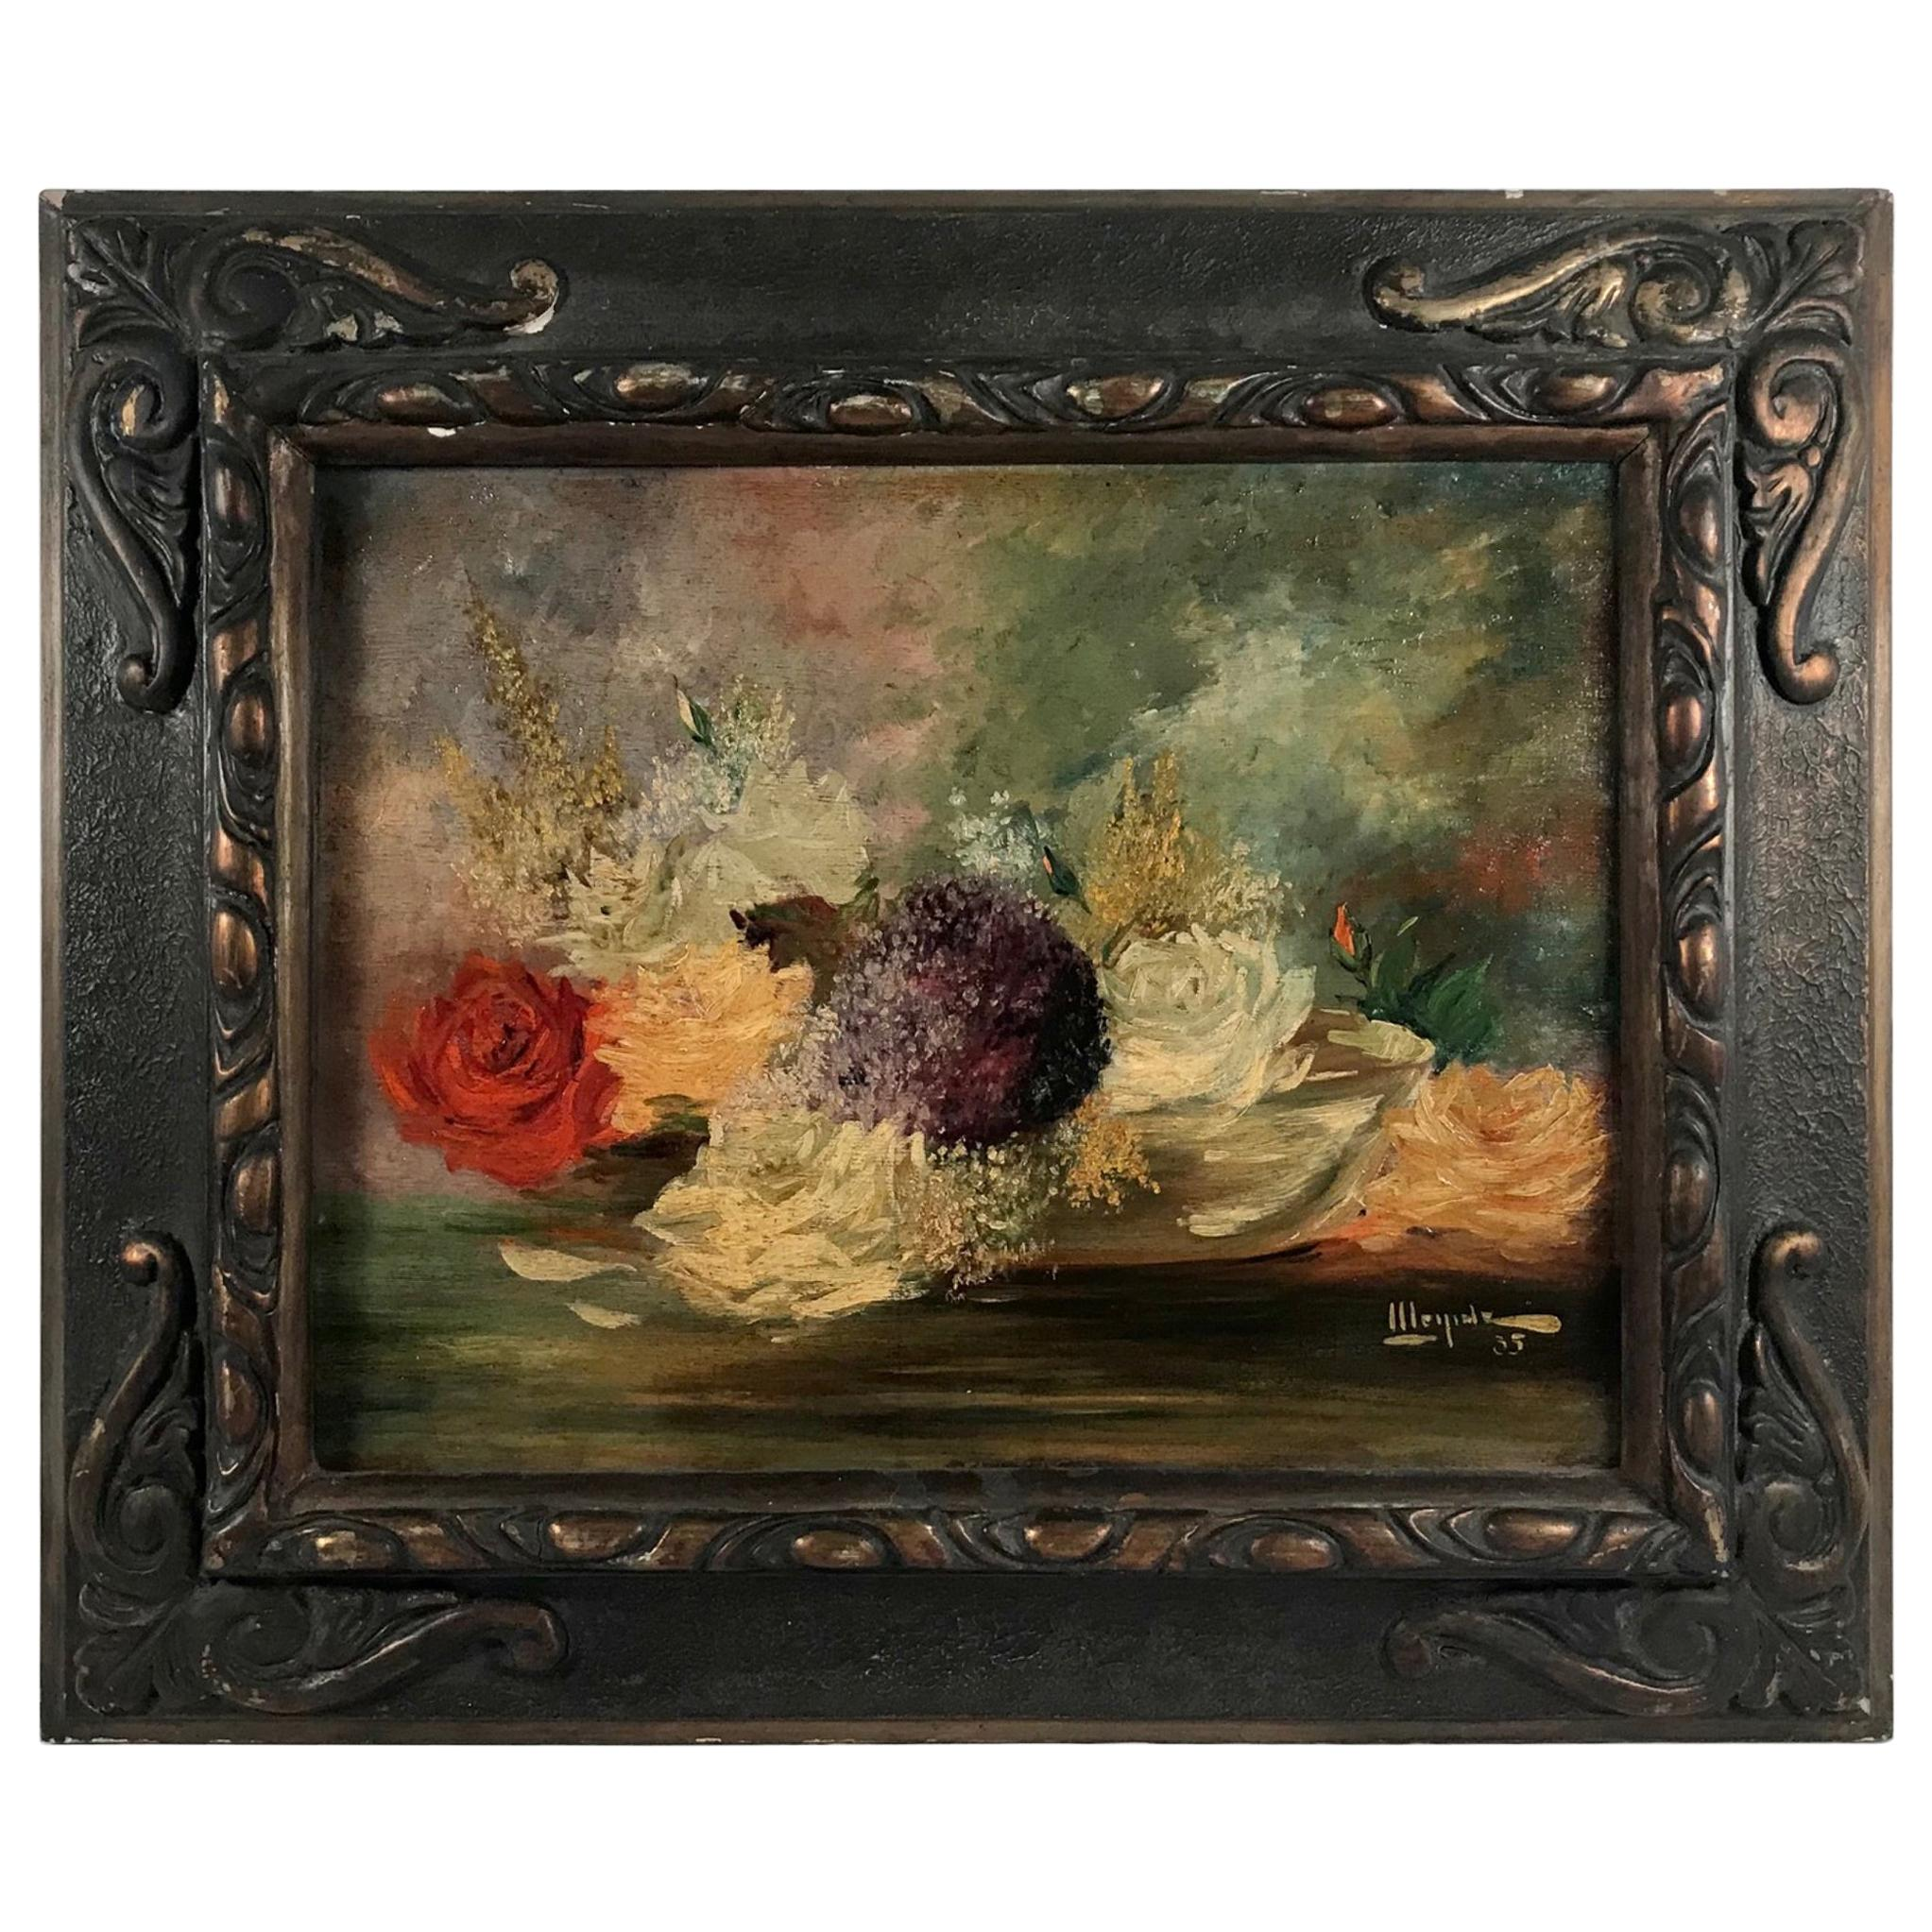 Floral Still Life, Framed Oil on Wood, Signed and Dated, 1935